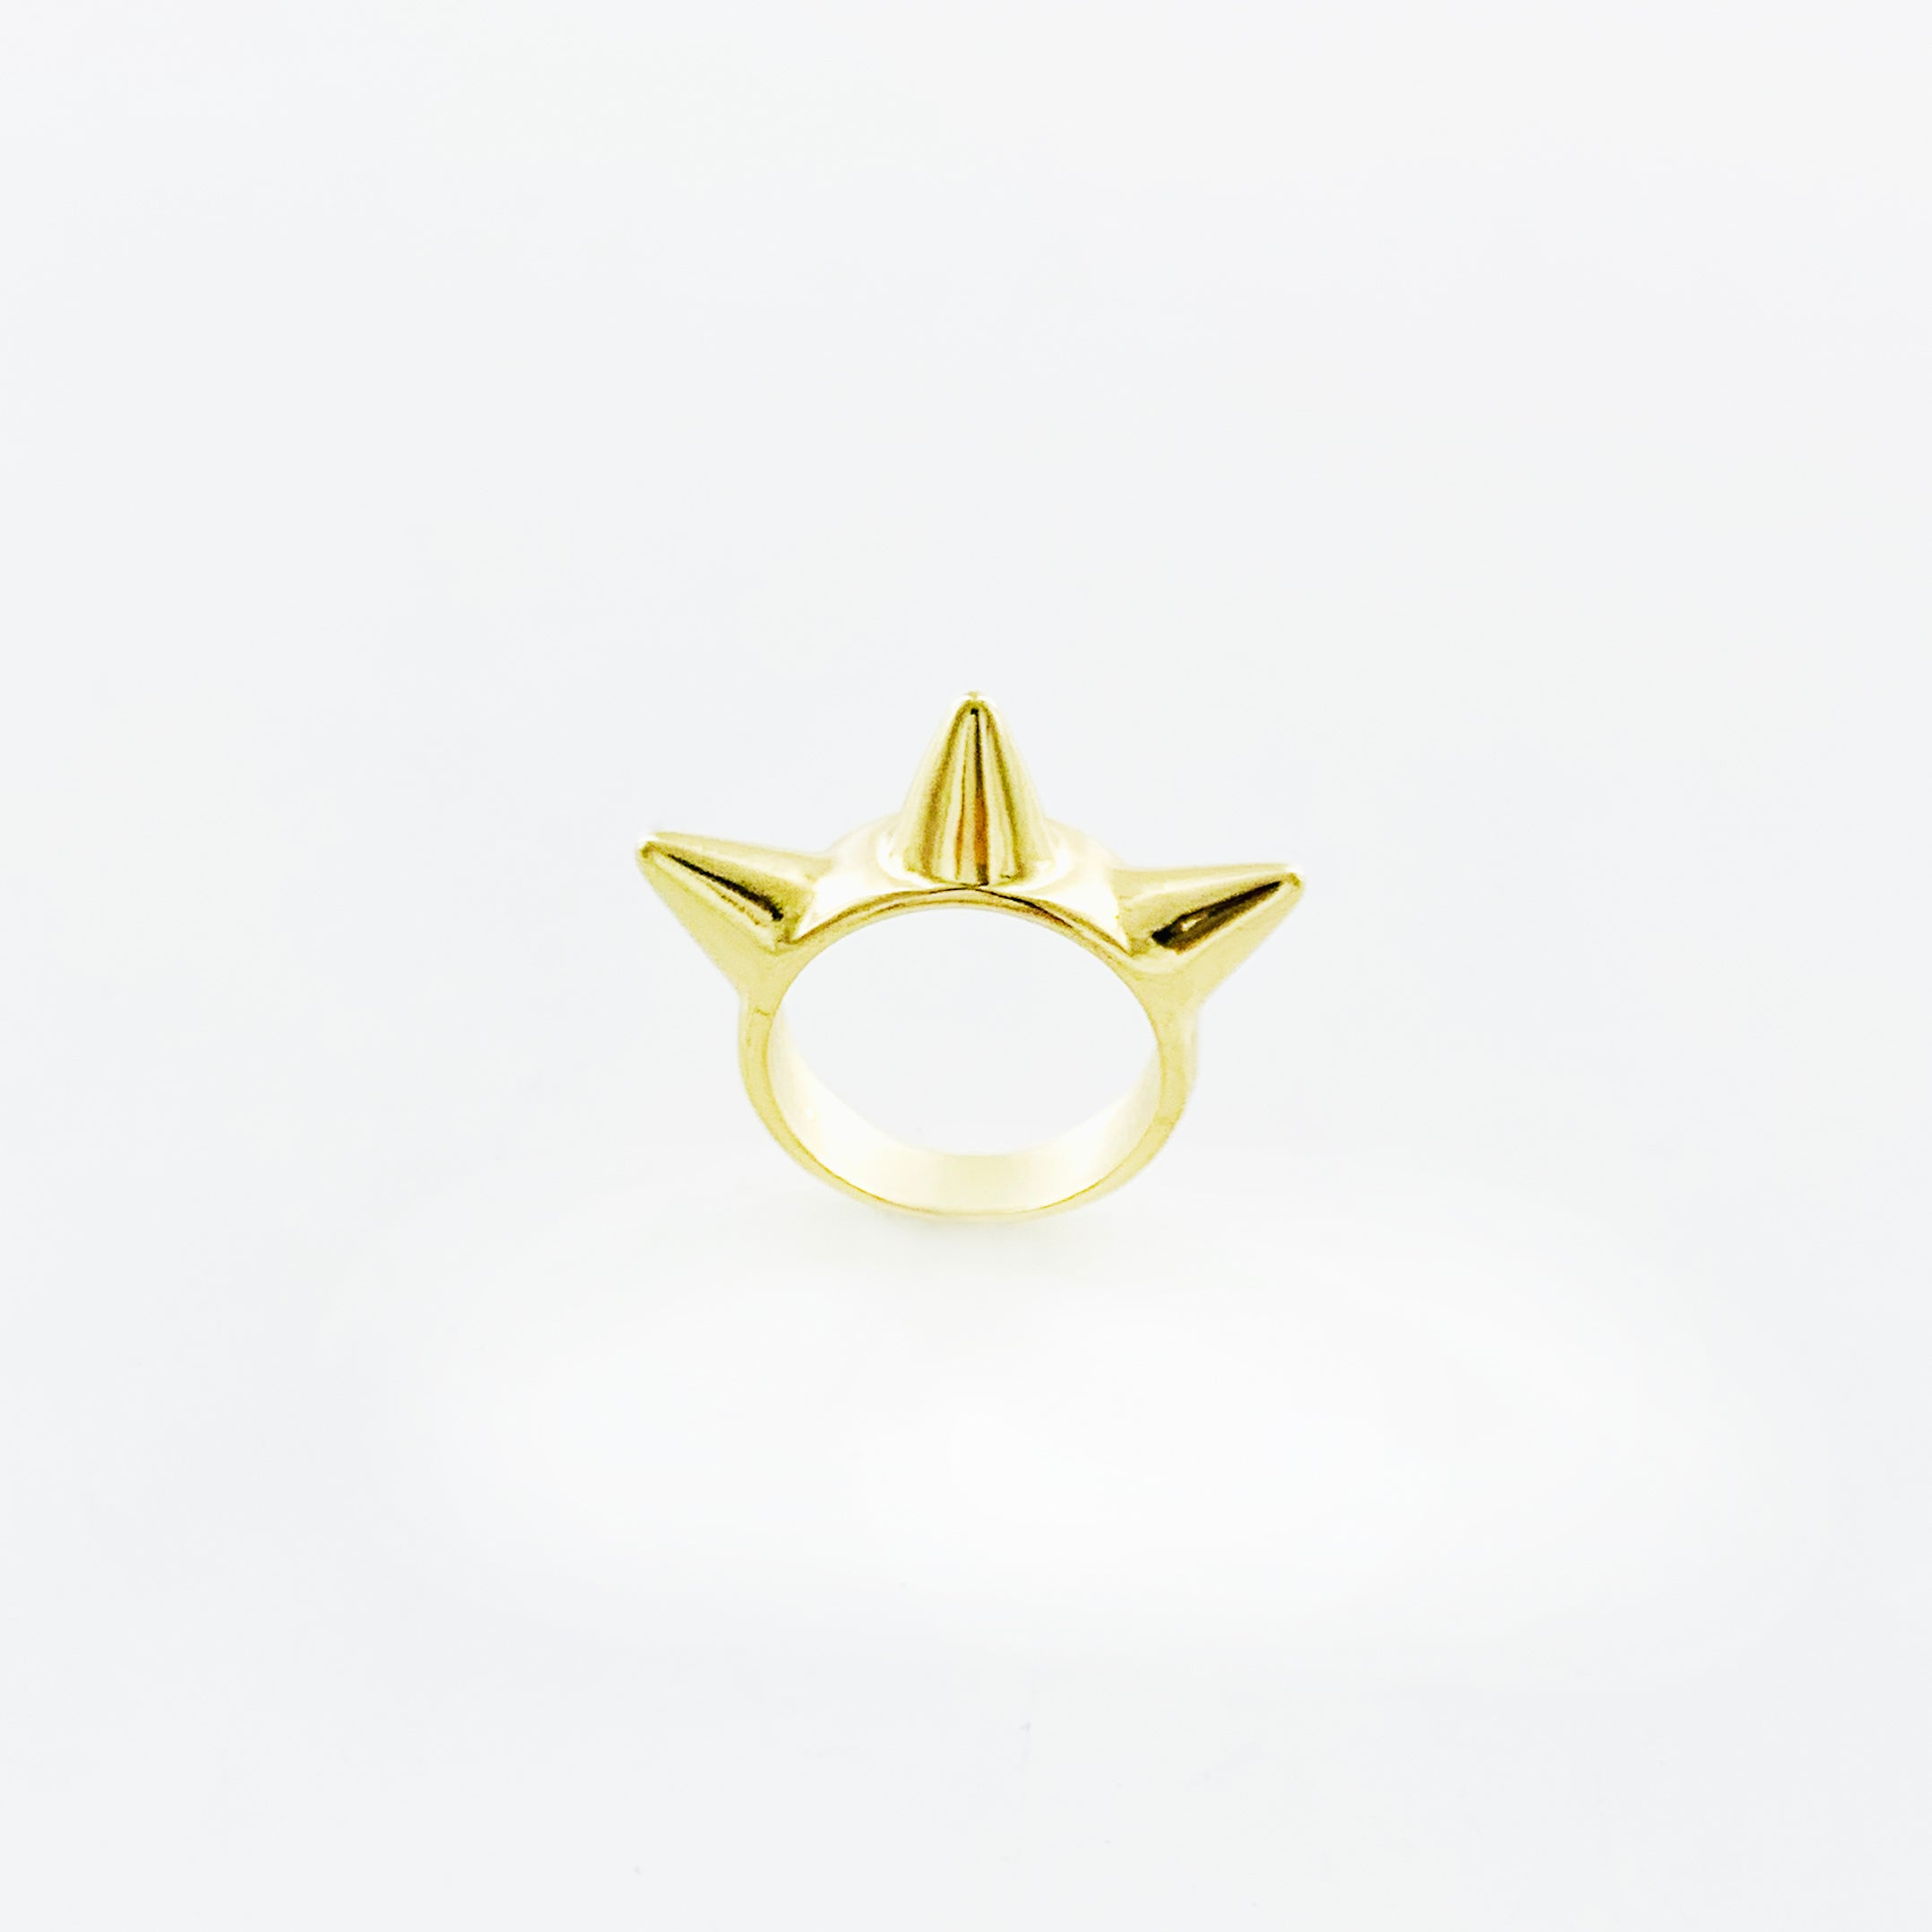 Gold ring with Three spikes